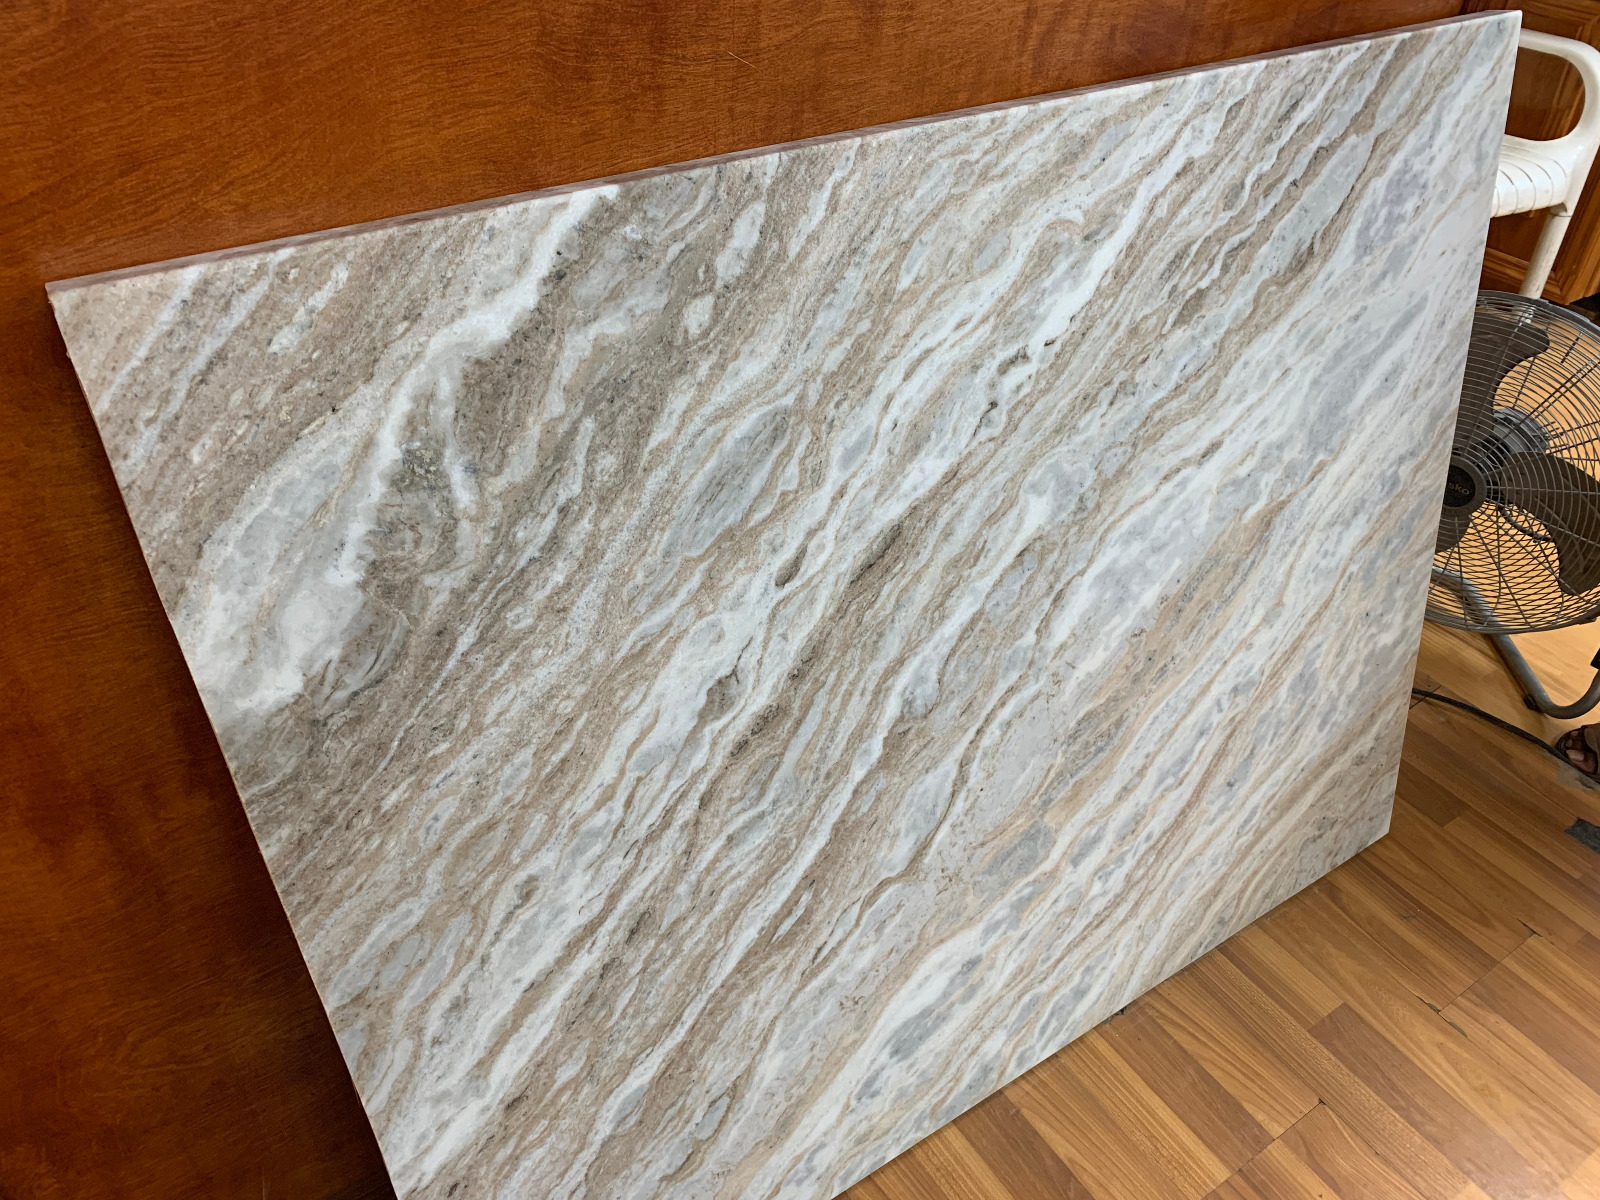 Fantasy Brown Marble Countertop